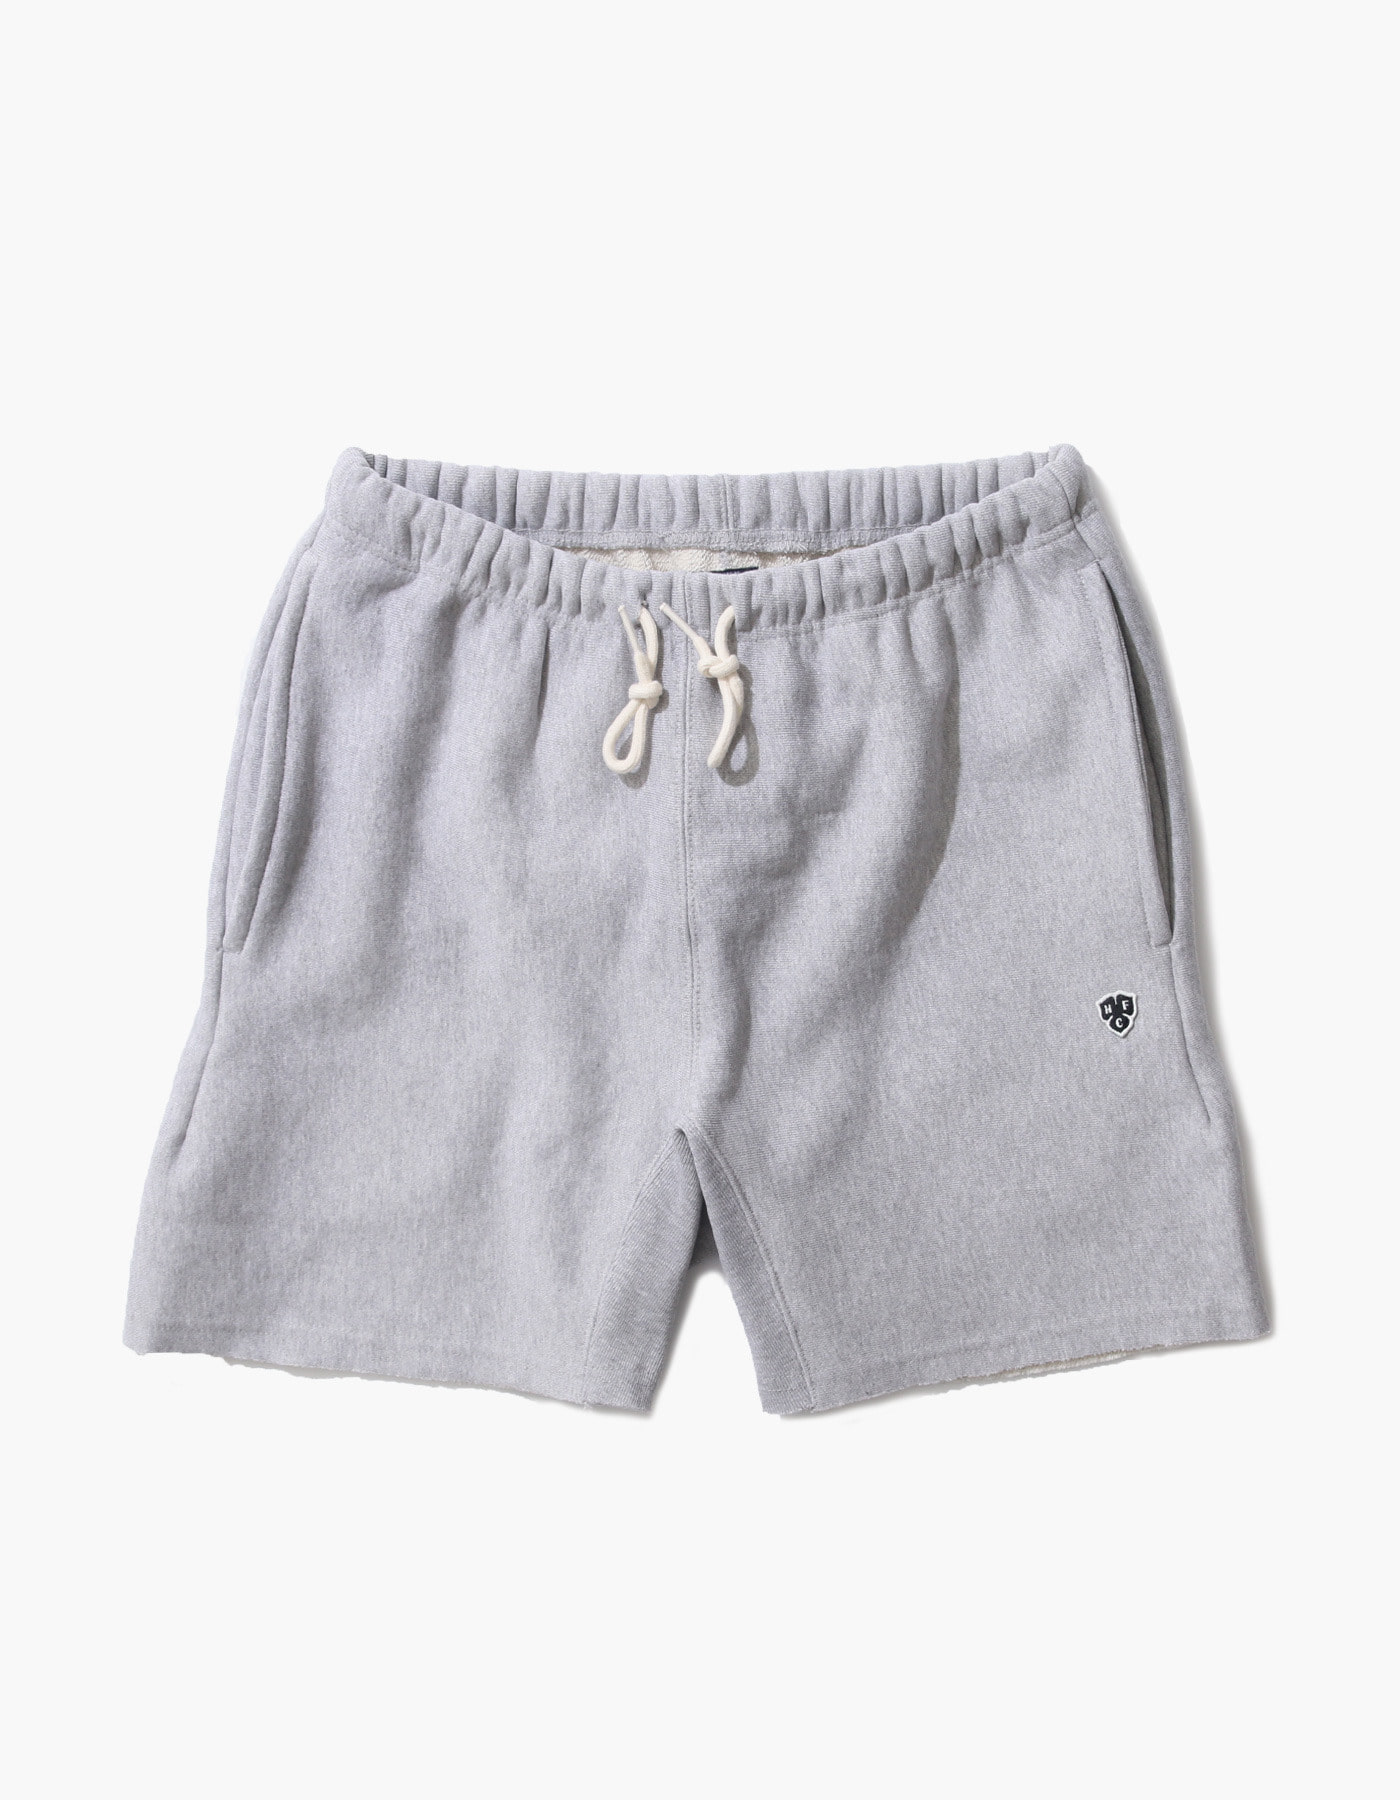 321 GYM SHORTS / M.GREY (5%)